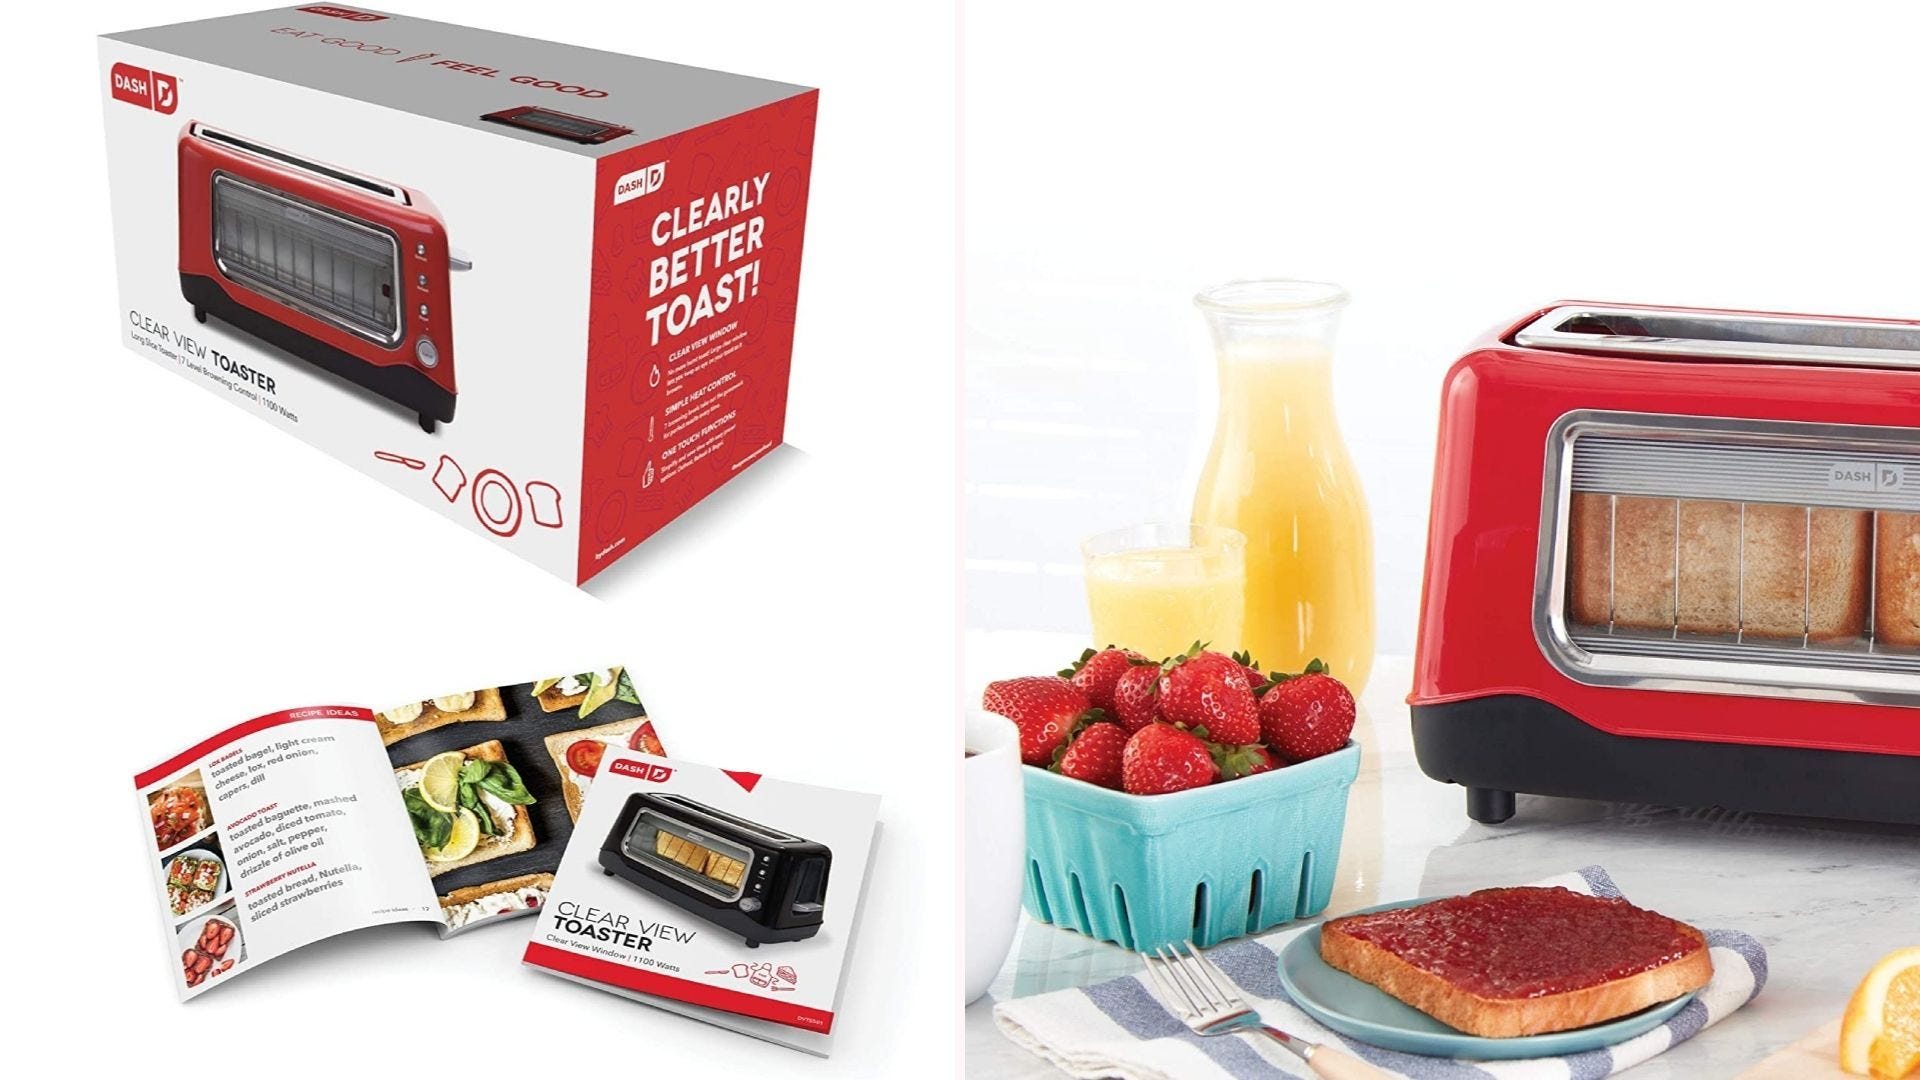 On the left, a red toaster with a see-through window sits in its packaging directly above a recipe idea booklet. On the right, the toaster sits on a counter next to a piece of jam-covered toast alongside other breakfast treats.